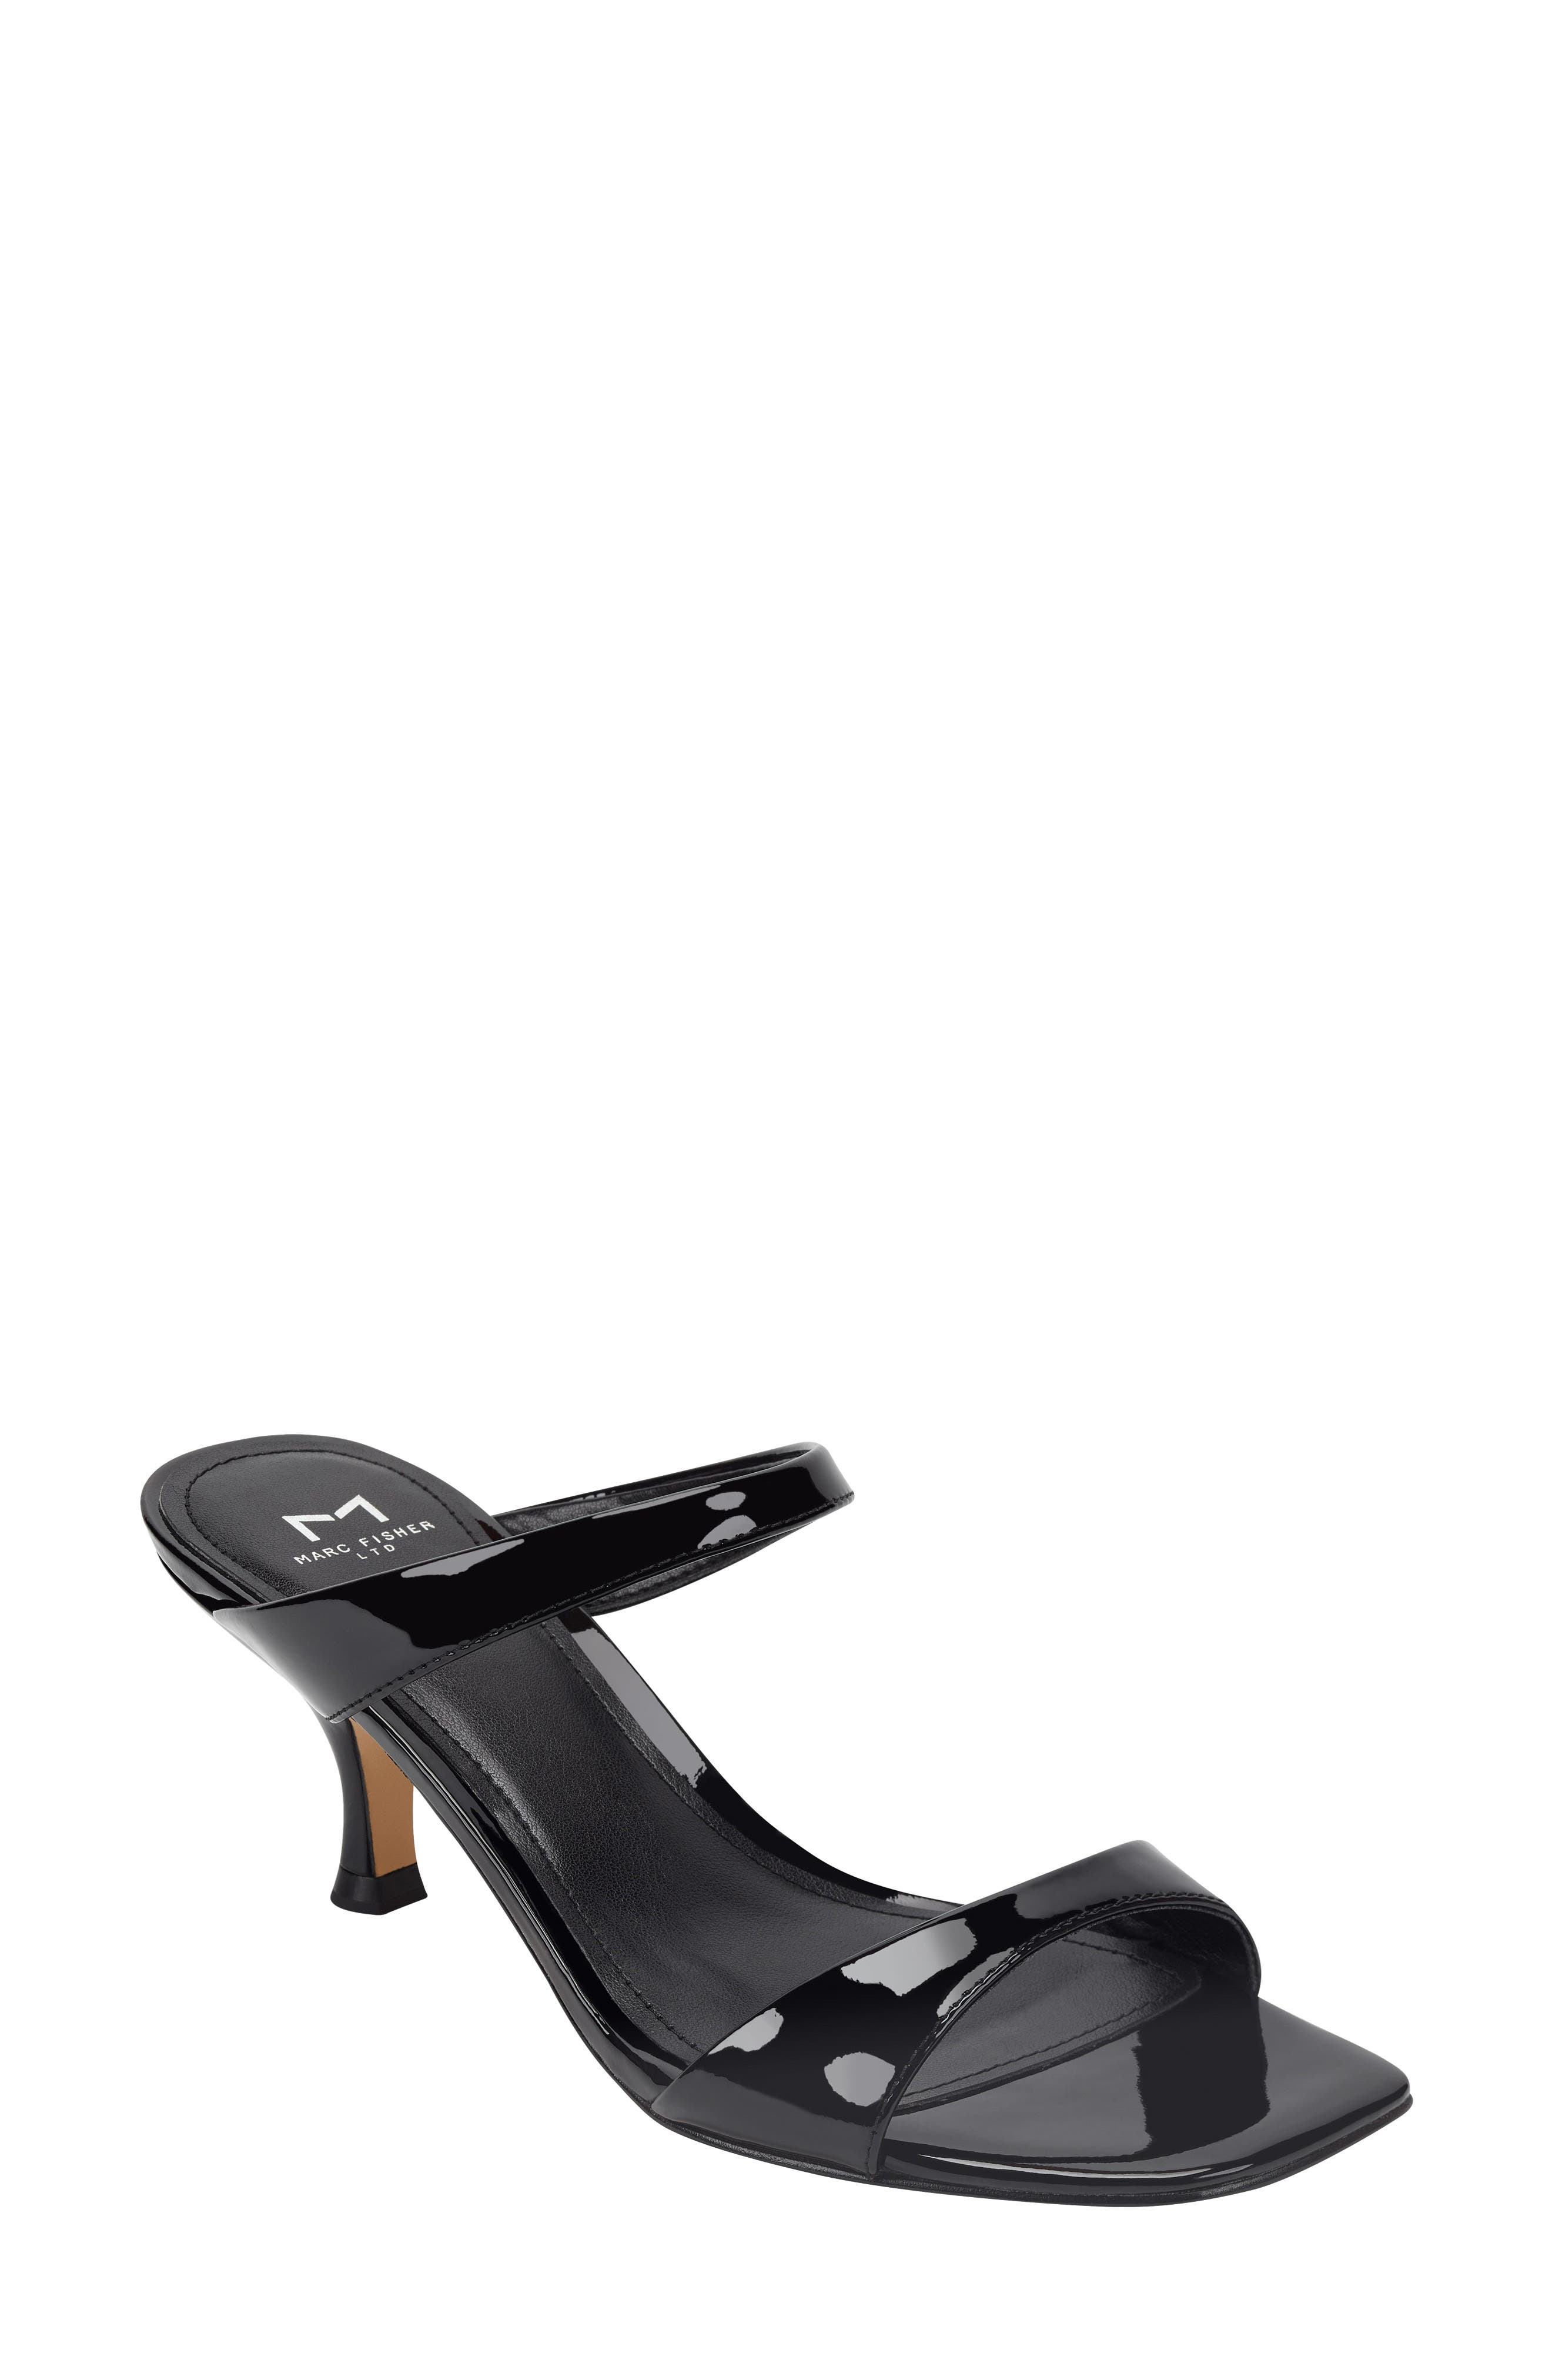 A poised, tapered heel lifts a square-toe sandal topped with two svelte straps. Style Name: Marc Fisher Ltd Genia Slide Sandal (Women). Style Number: 5943695. Available in stores.